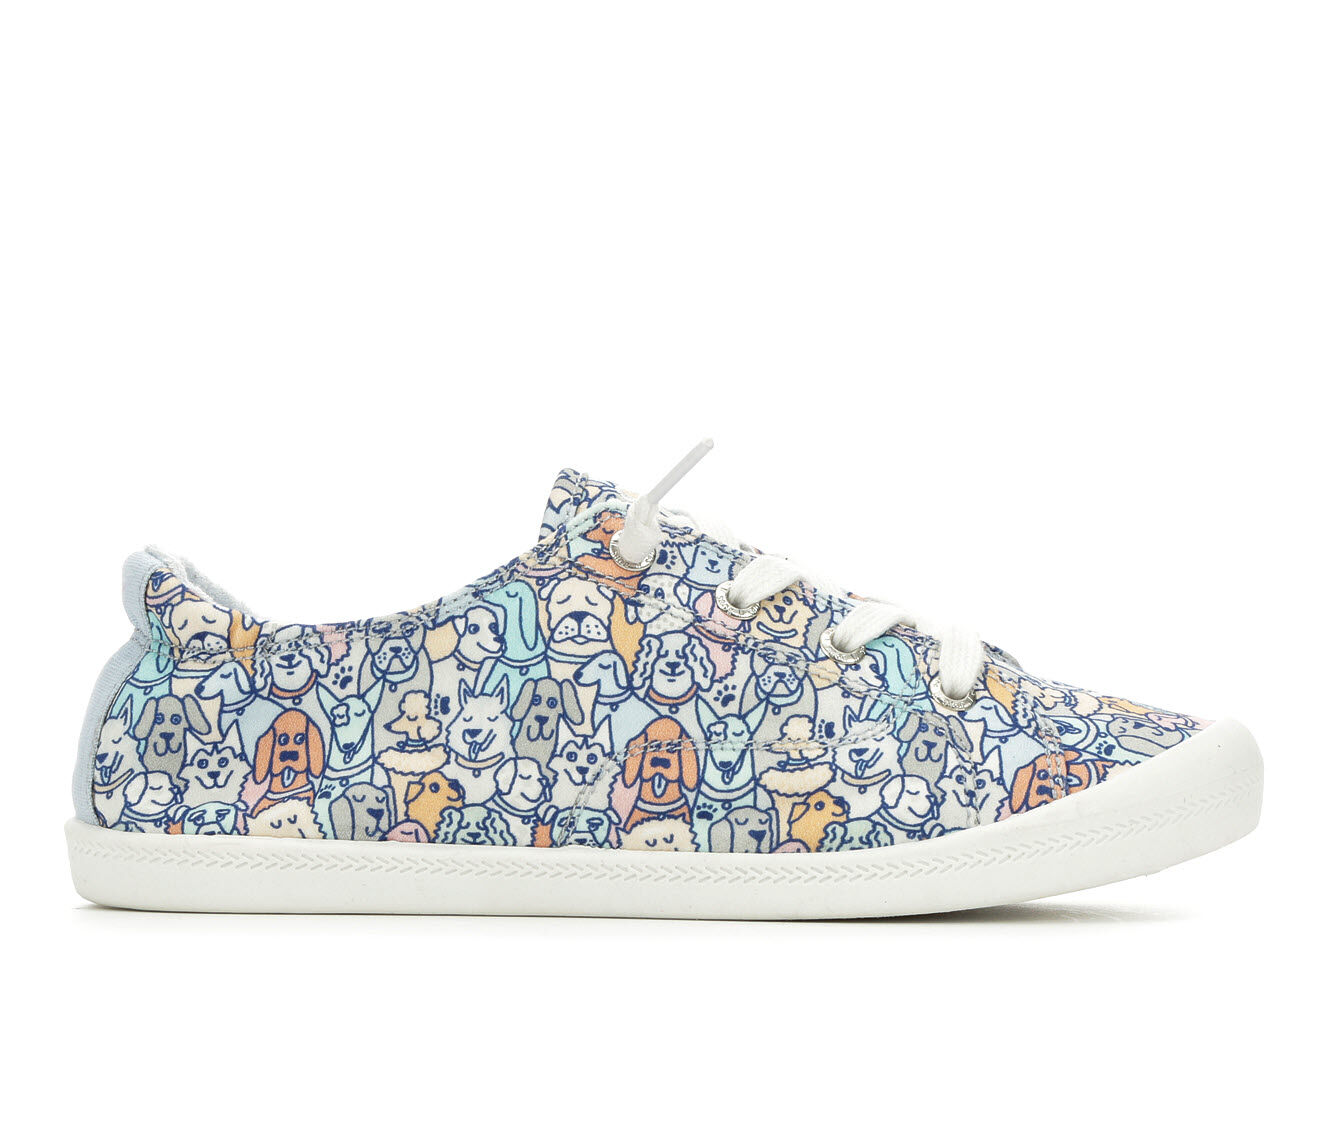 more discount Women's BOBS Woof Pack 32604 Sneakers Blue